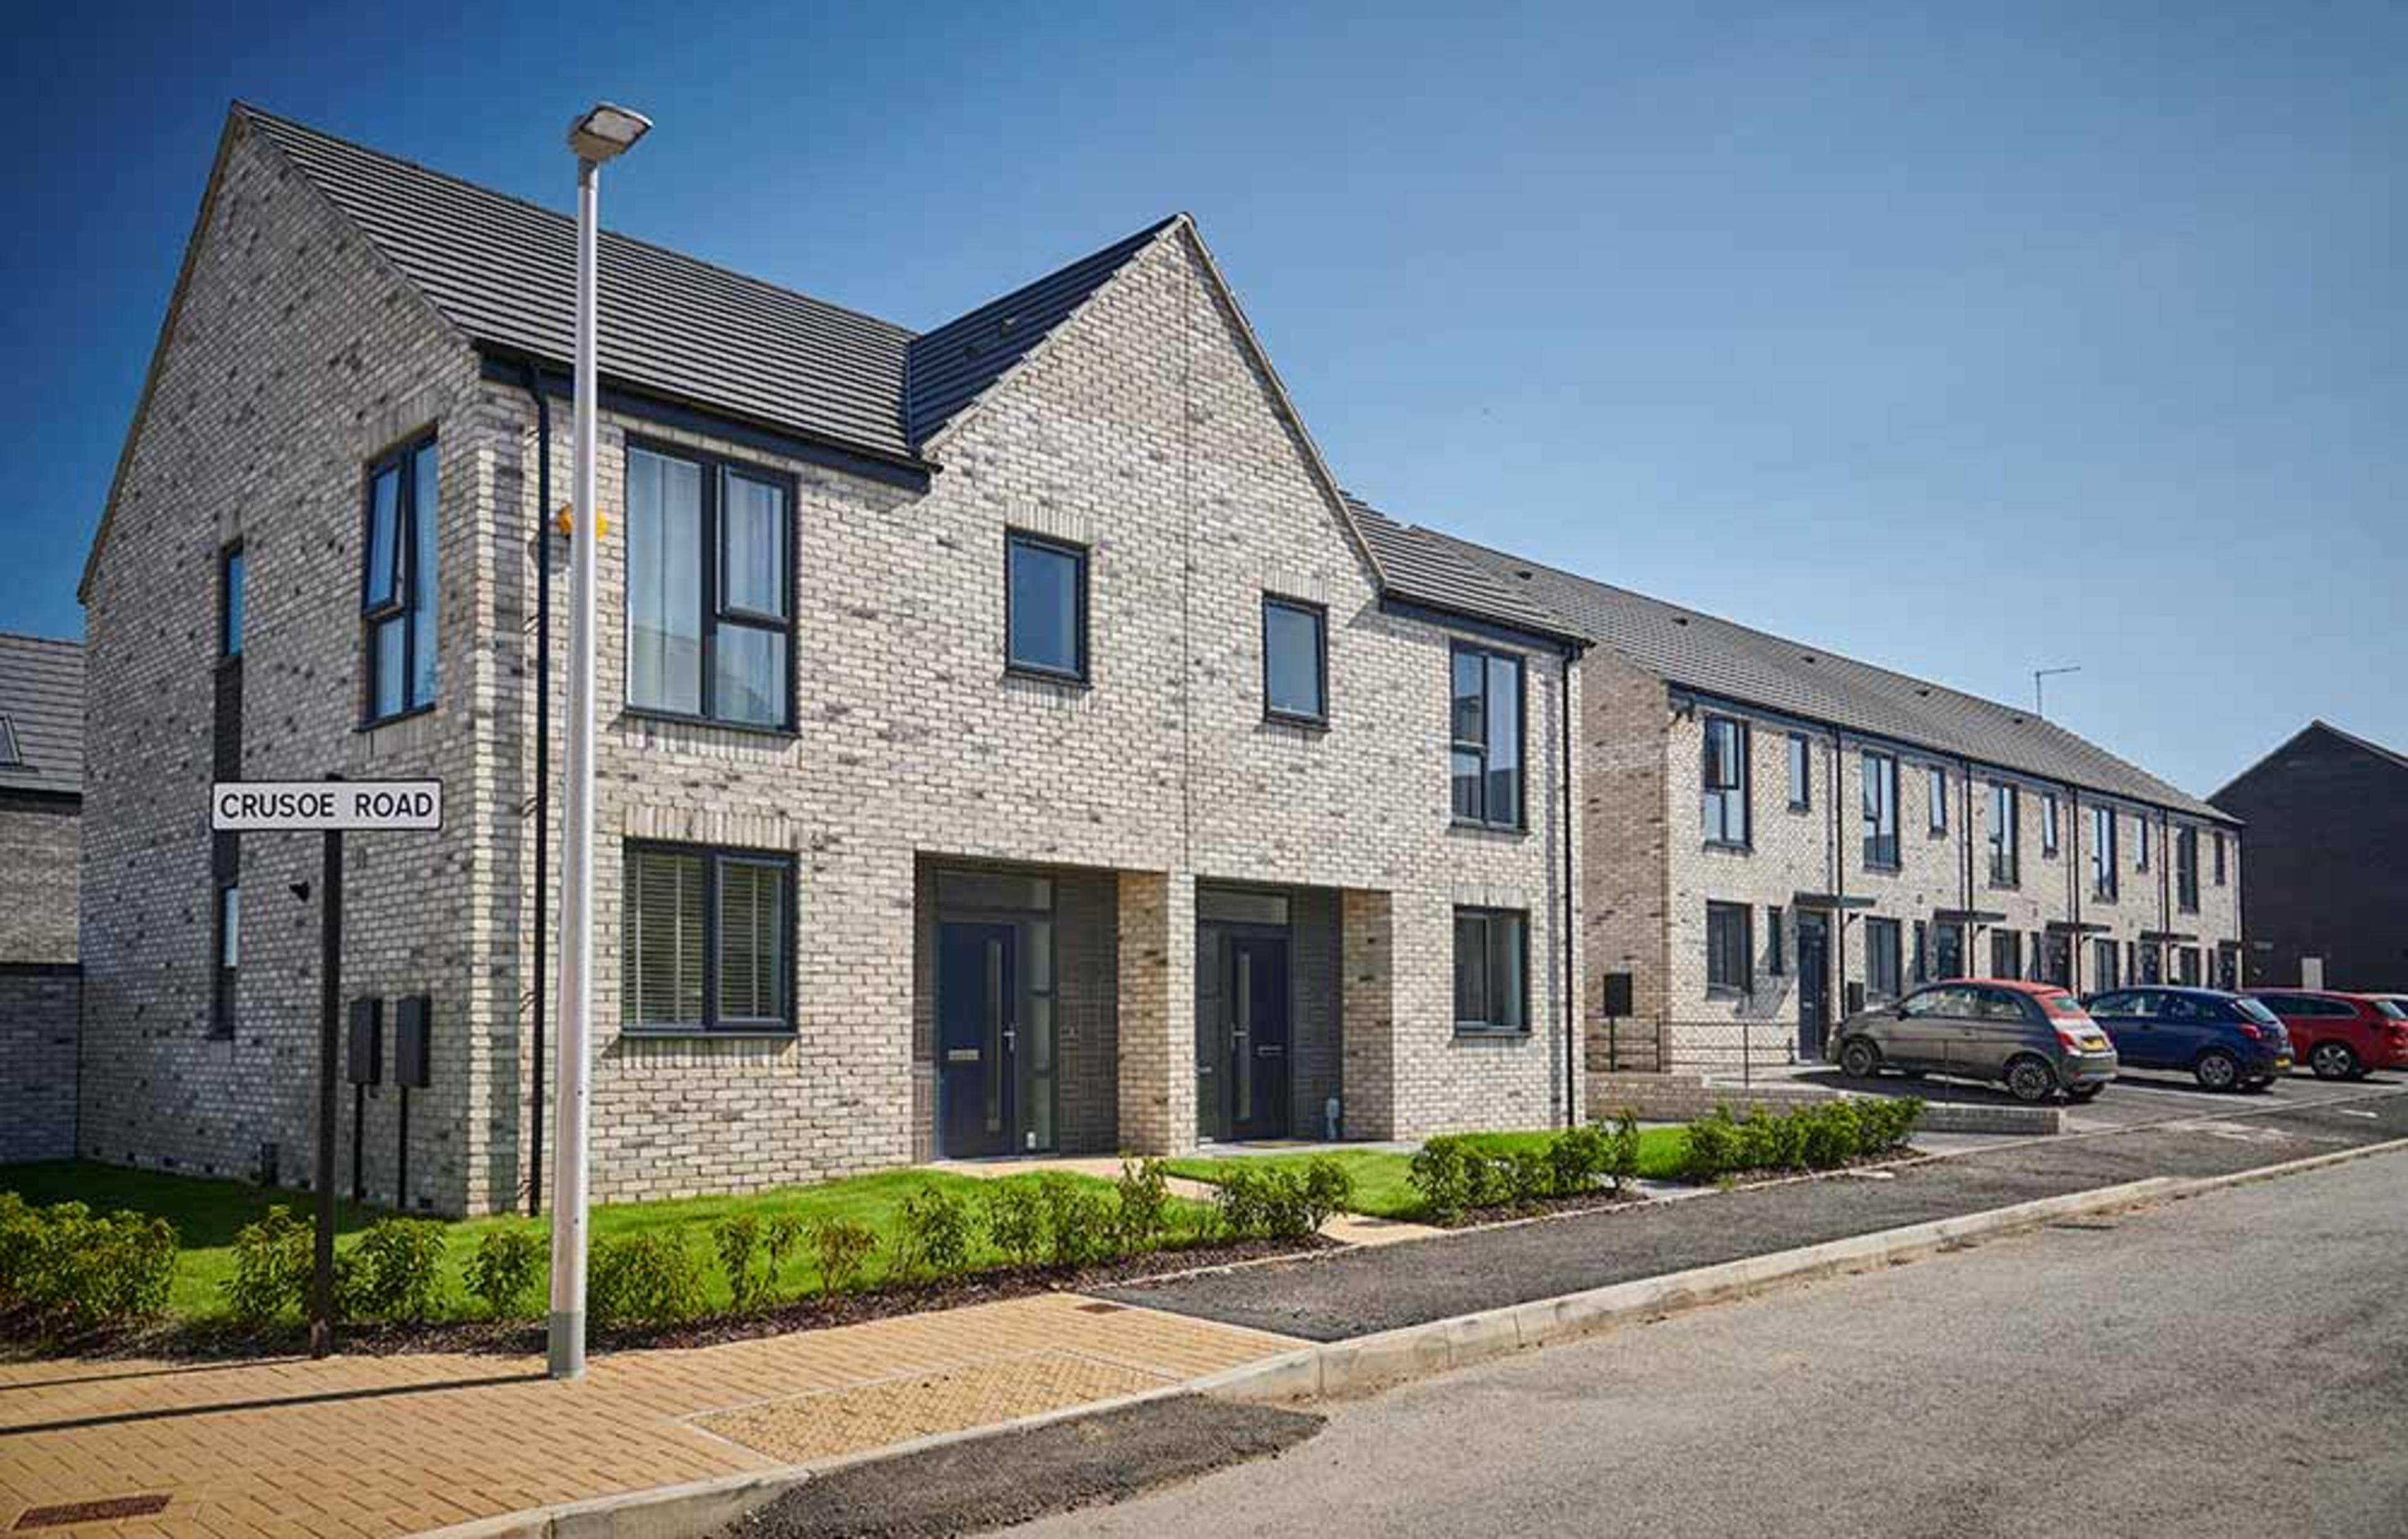 A row of semi-detached new build homes on Crusoe Road, Meaux Rise